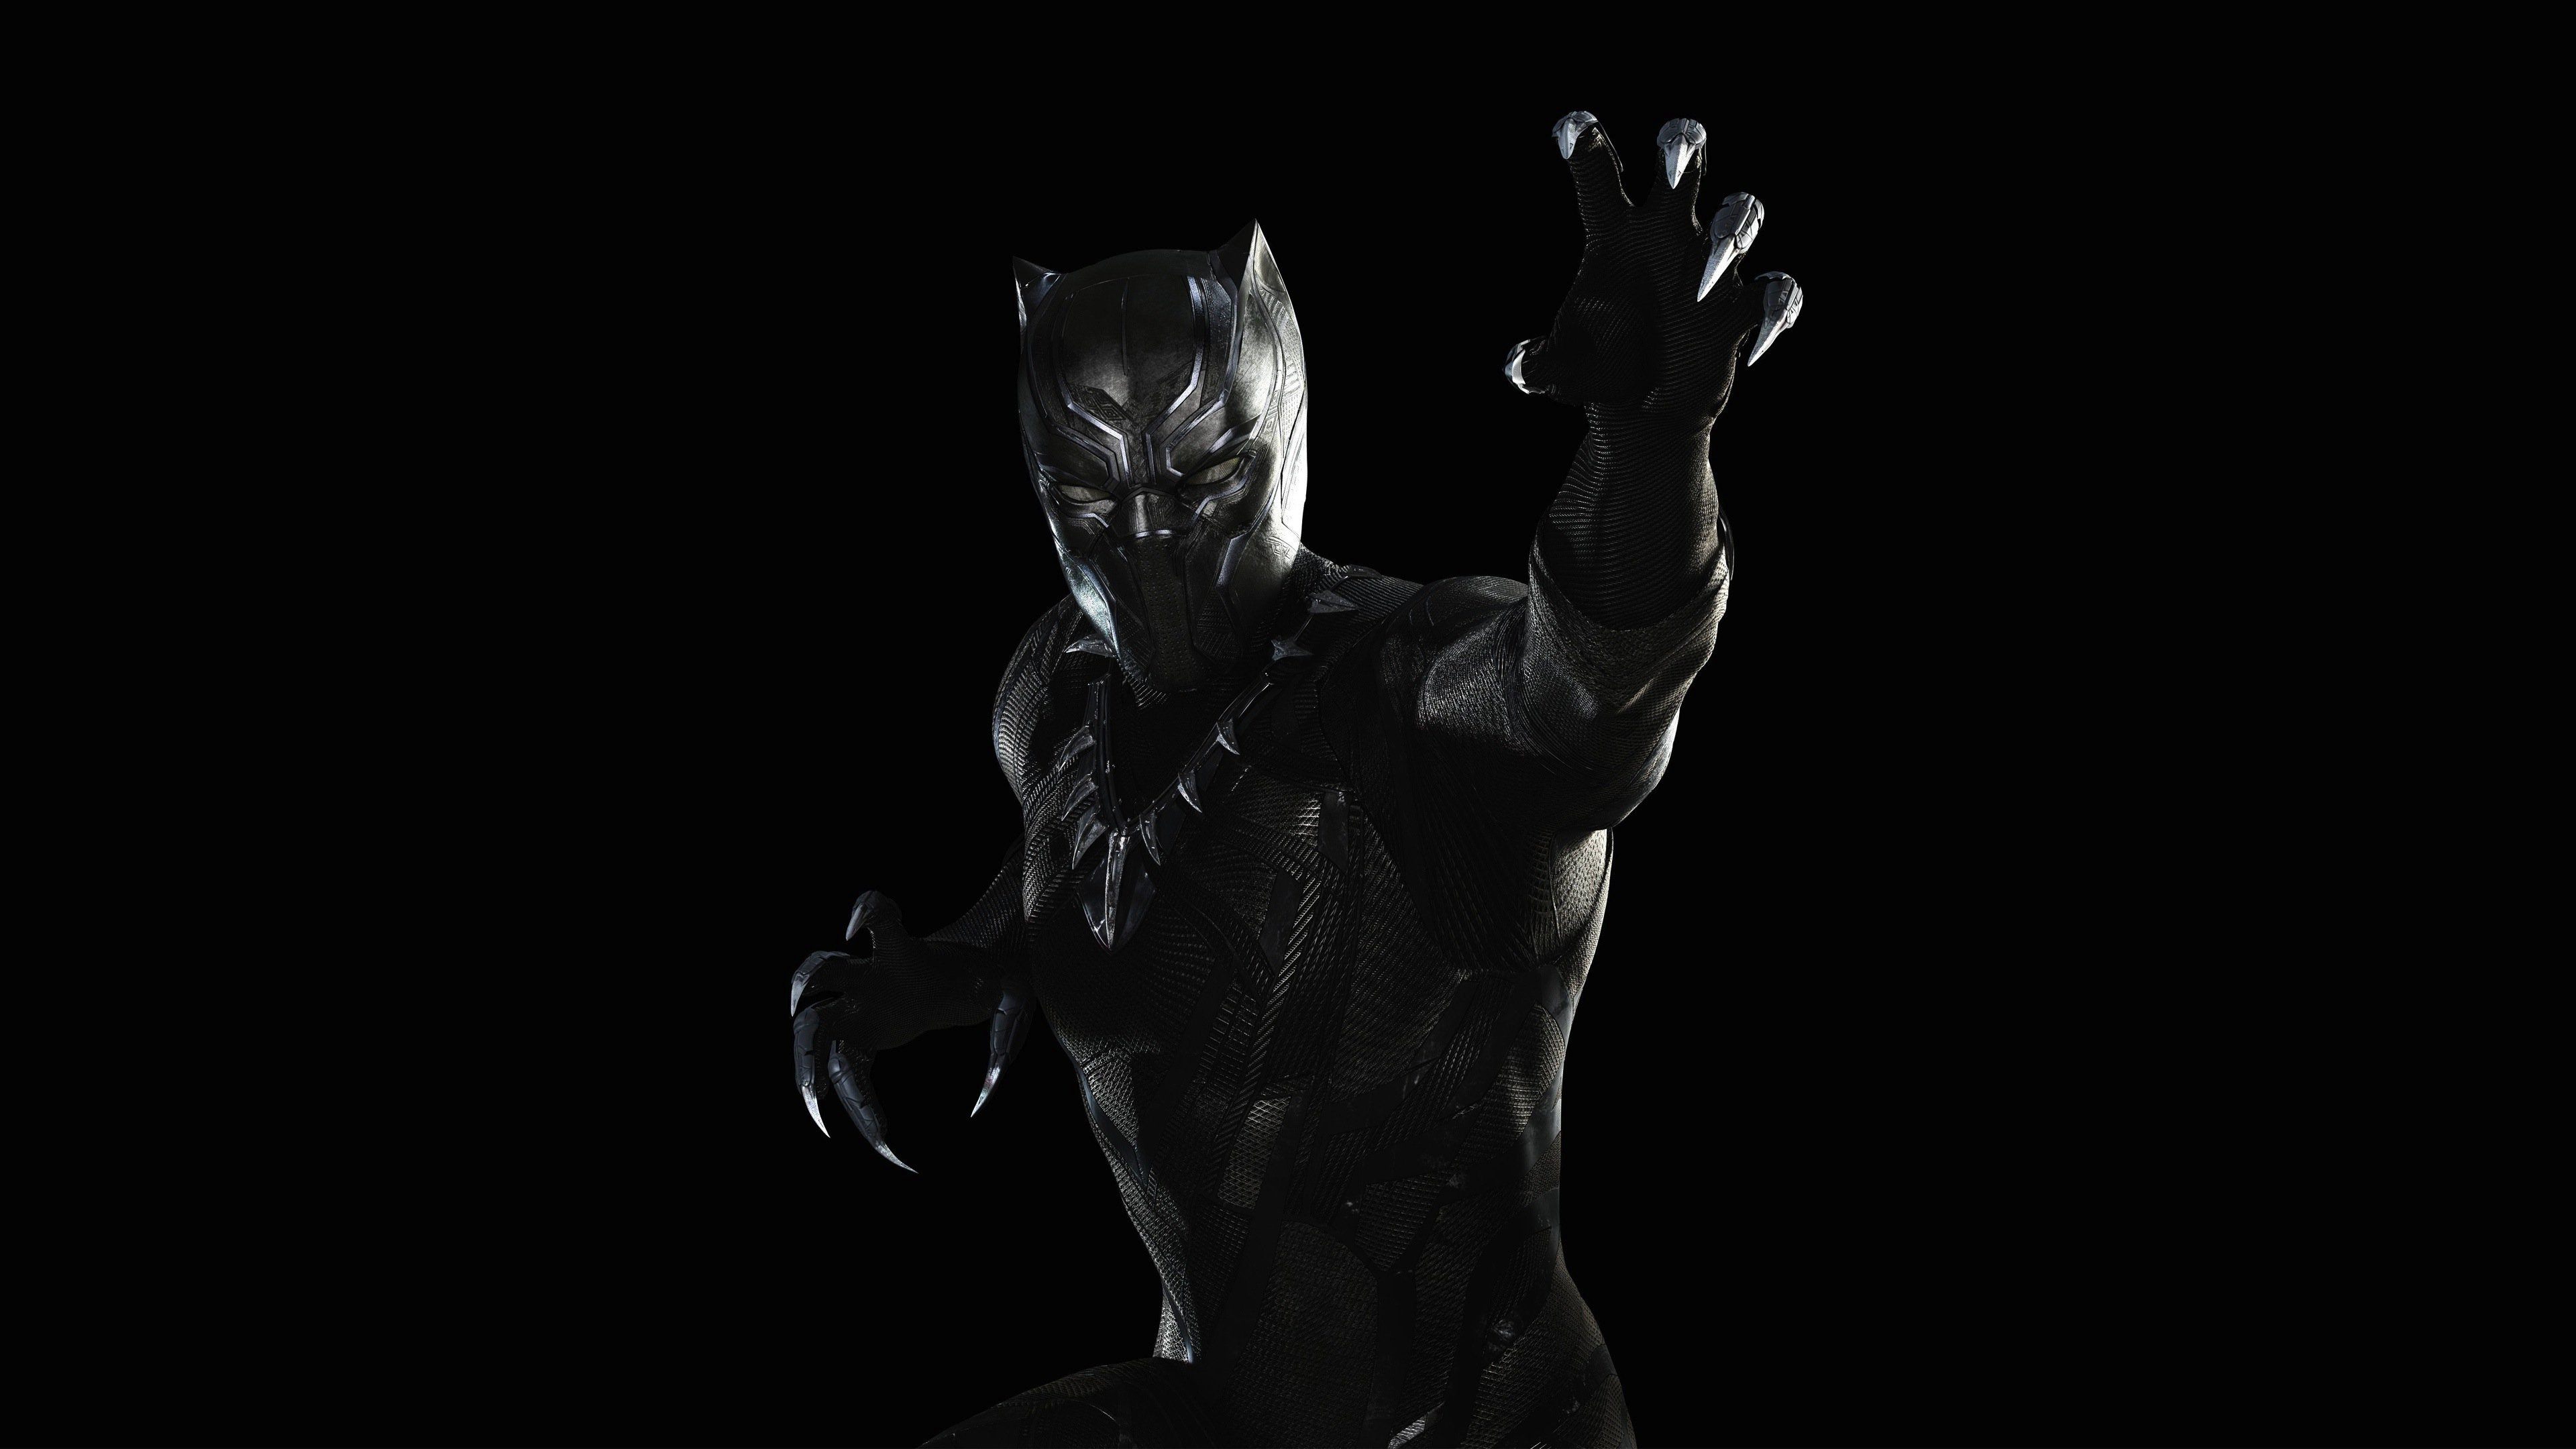 Black Panther Wallpaper High Resolution ~ Sdeerwallpaper